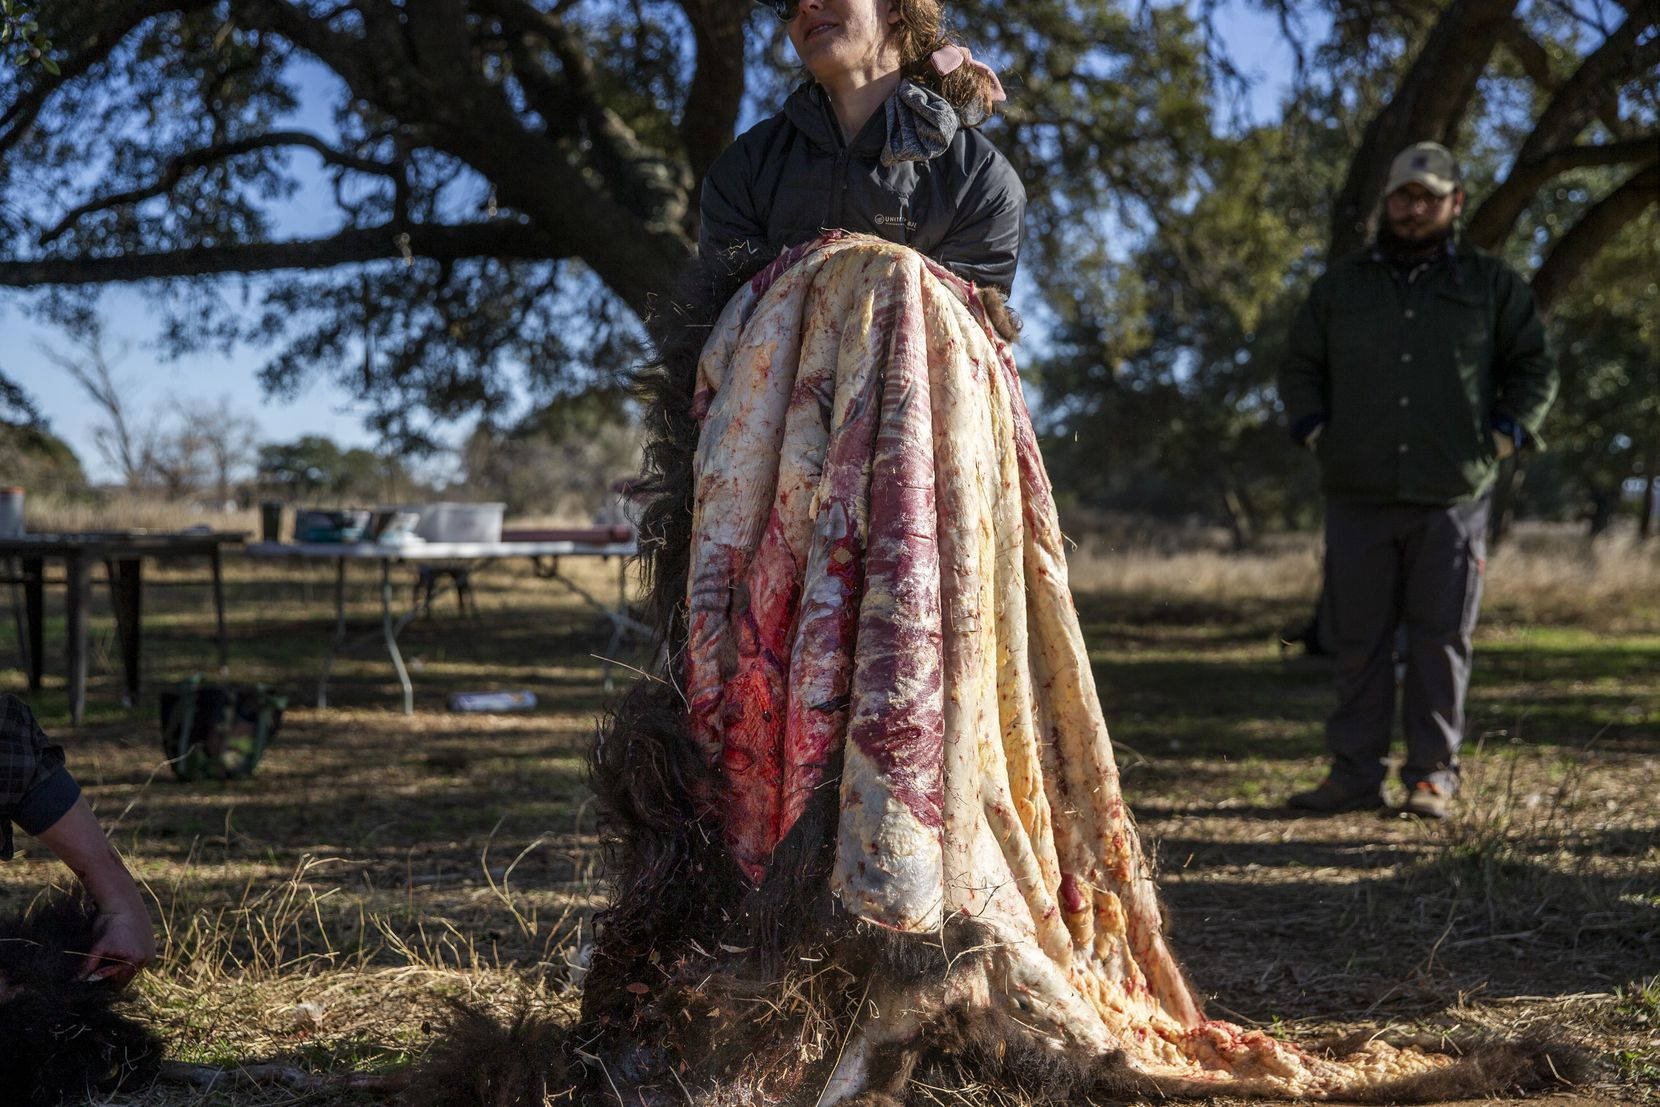 Katie Forrest, co-owner of Roam Ranch, lifts a bison hide for soaking following a daylong bison field harvest event at Roam Ranch in Fredericksburg, Texas, on Sunday, Jan. 19, 2020.